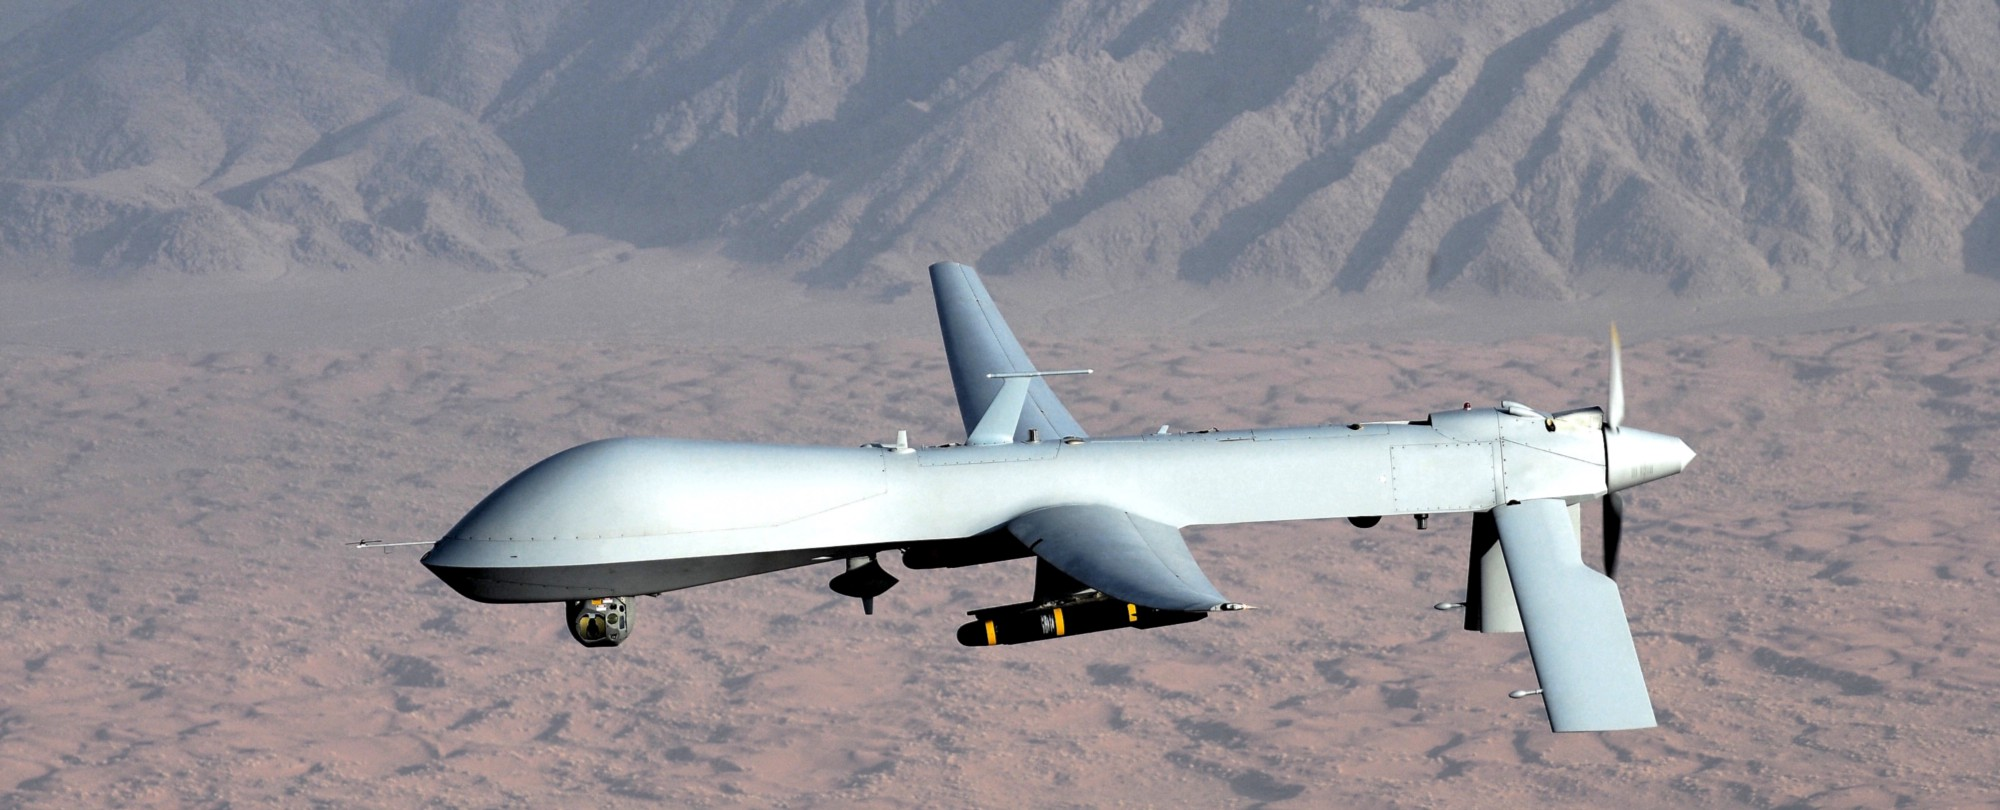 A Predator Drone Sometimes Used In Targeted Killings US Air Force Photo Lt Col Leslie Pratt Source Wikipedia